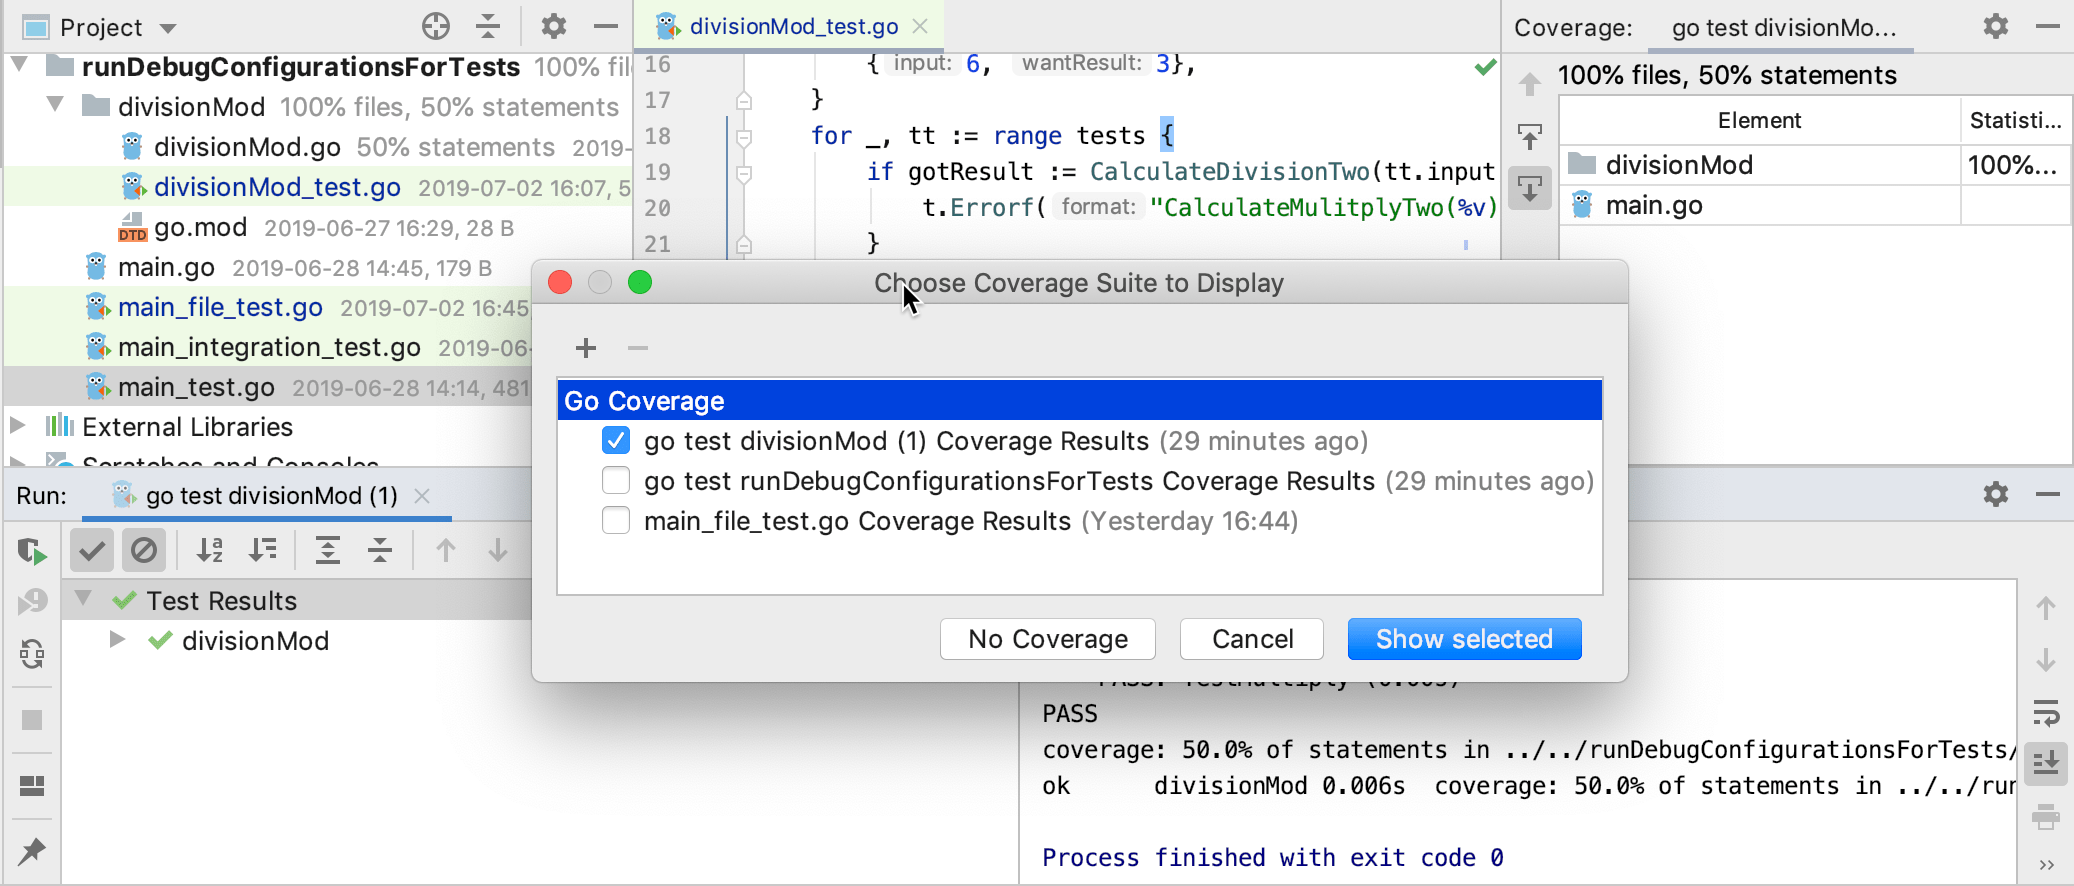 View code coverage results